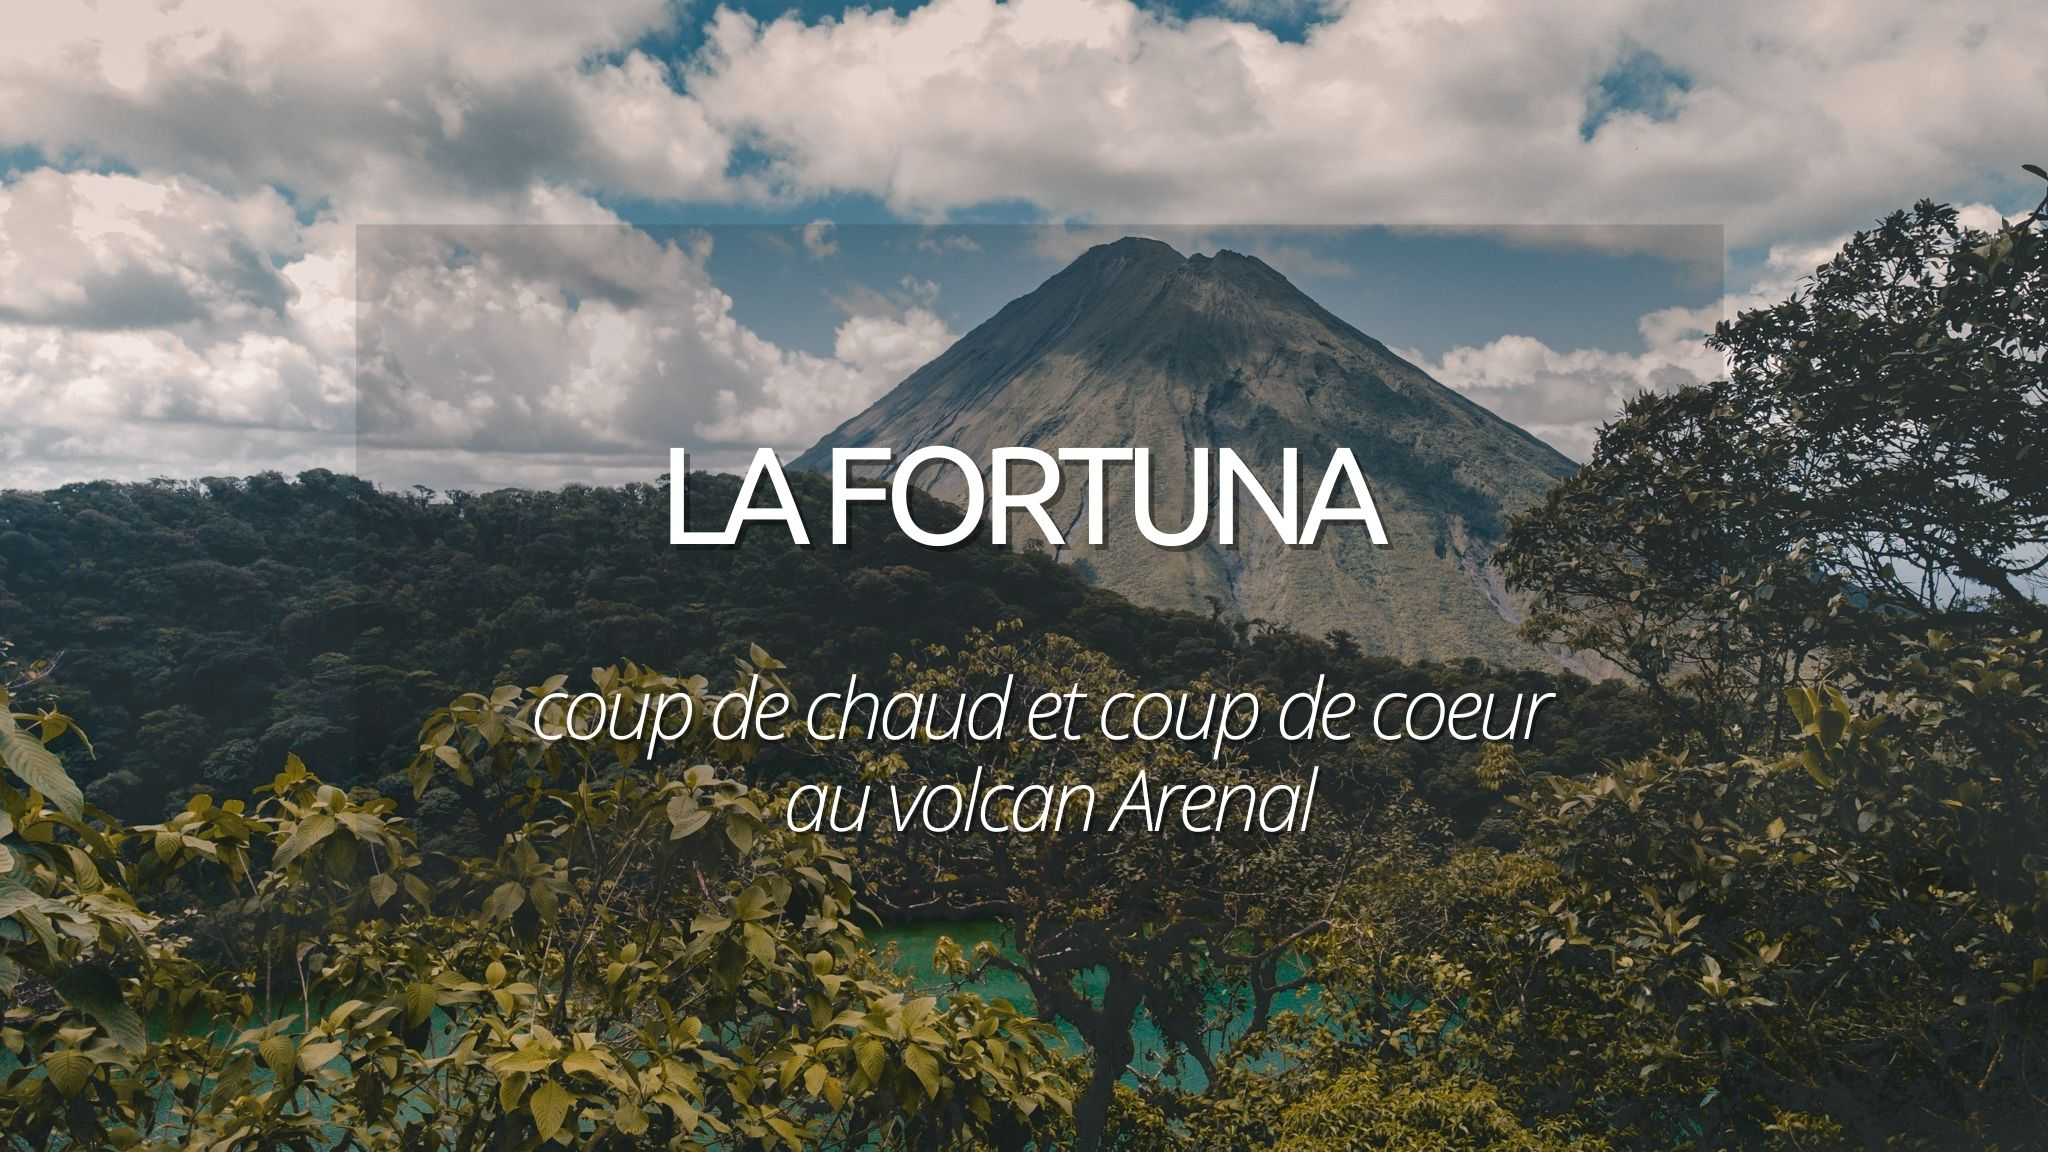 couverture article la fortuna